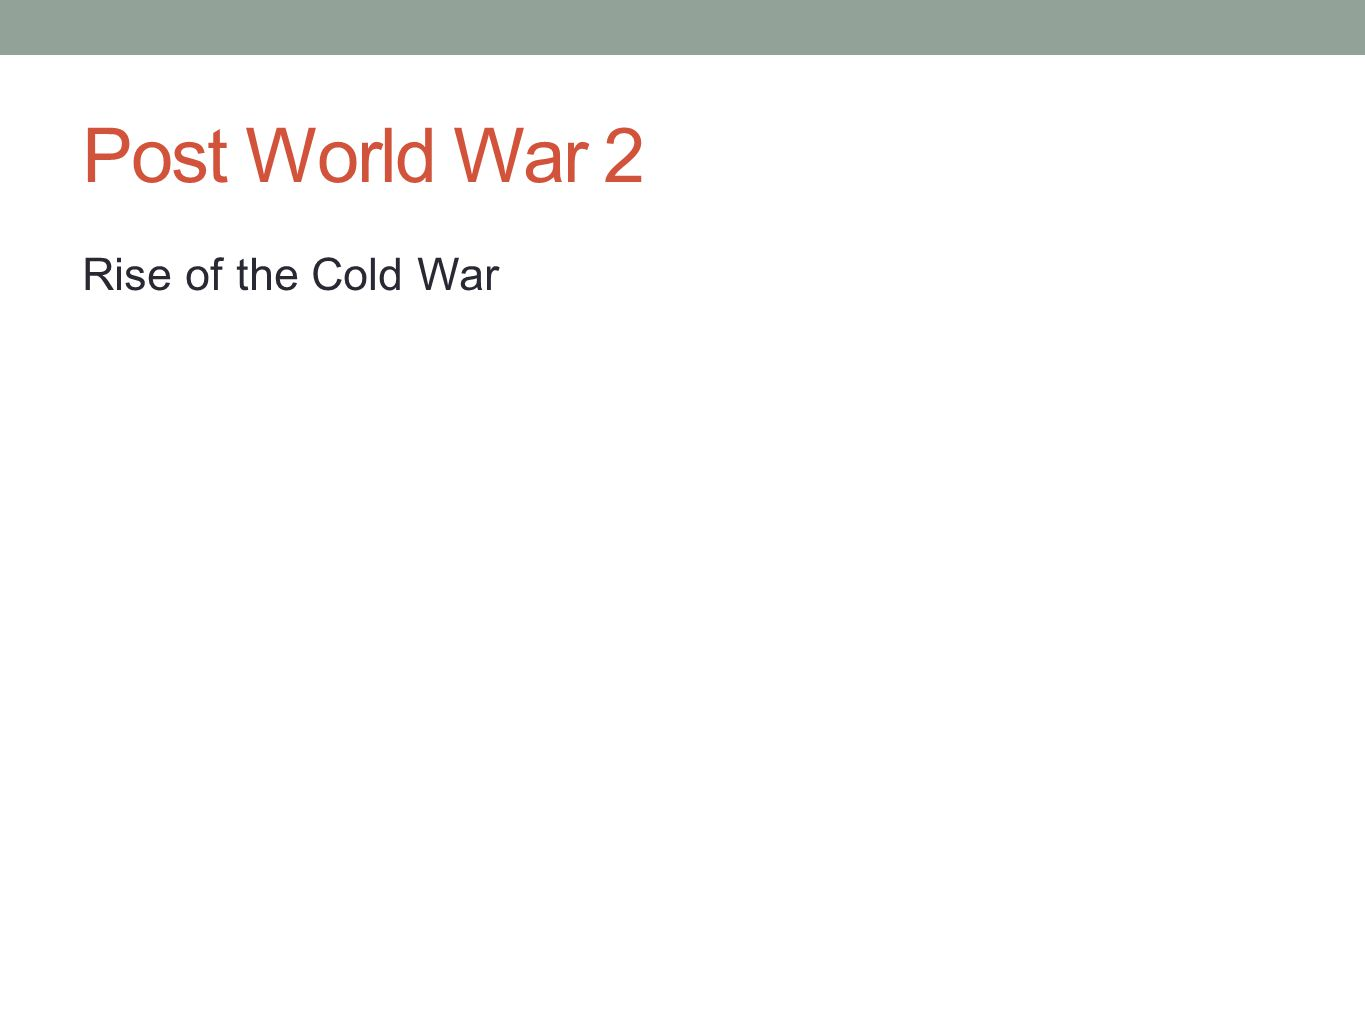 Post World War 2 Rise of the Cold War